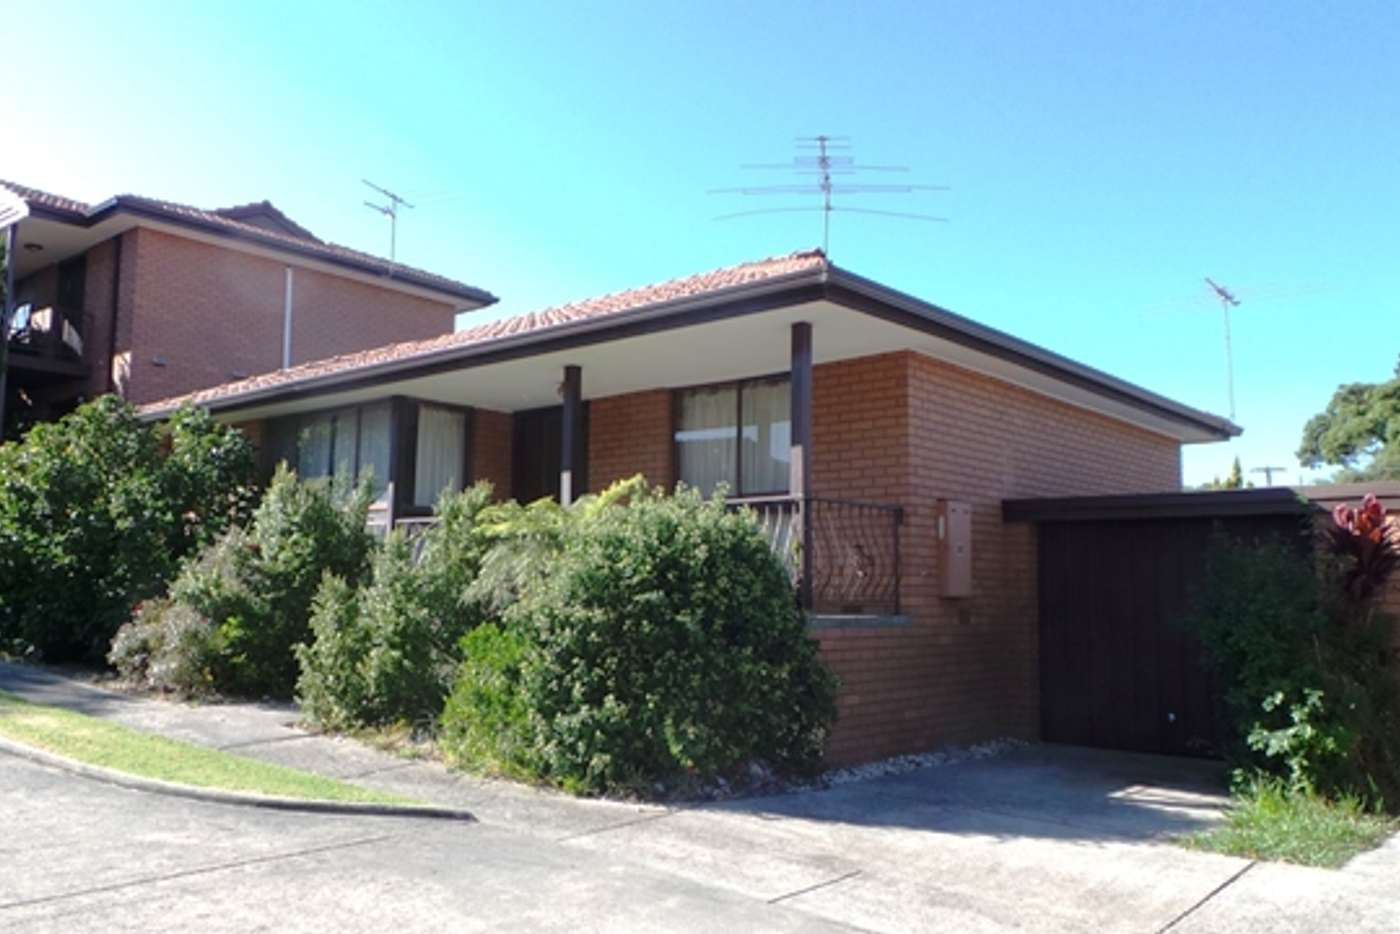 Main view of Homely unit listing, 8/37 Clyde Road, Berwick VIC 3806